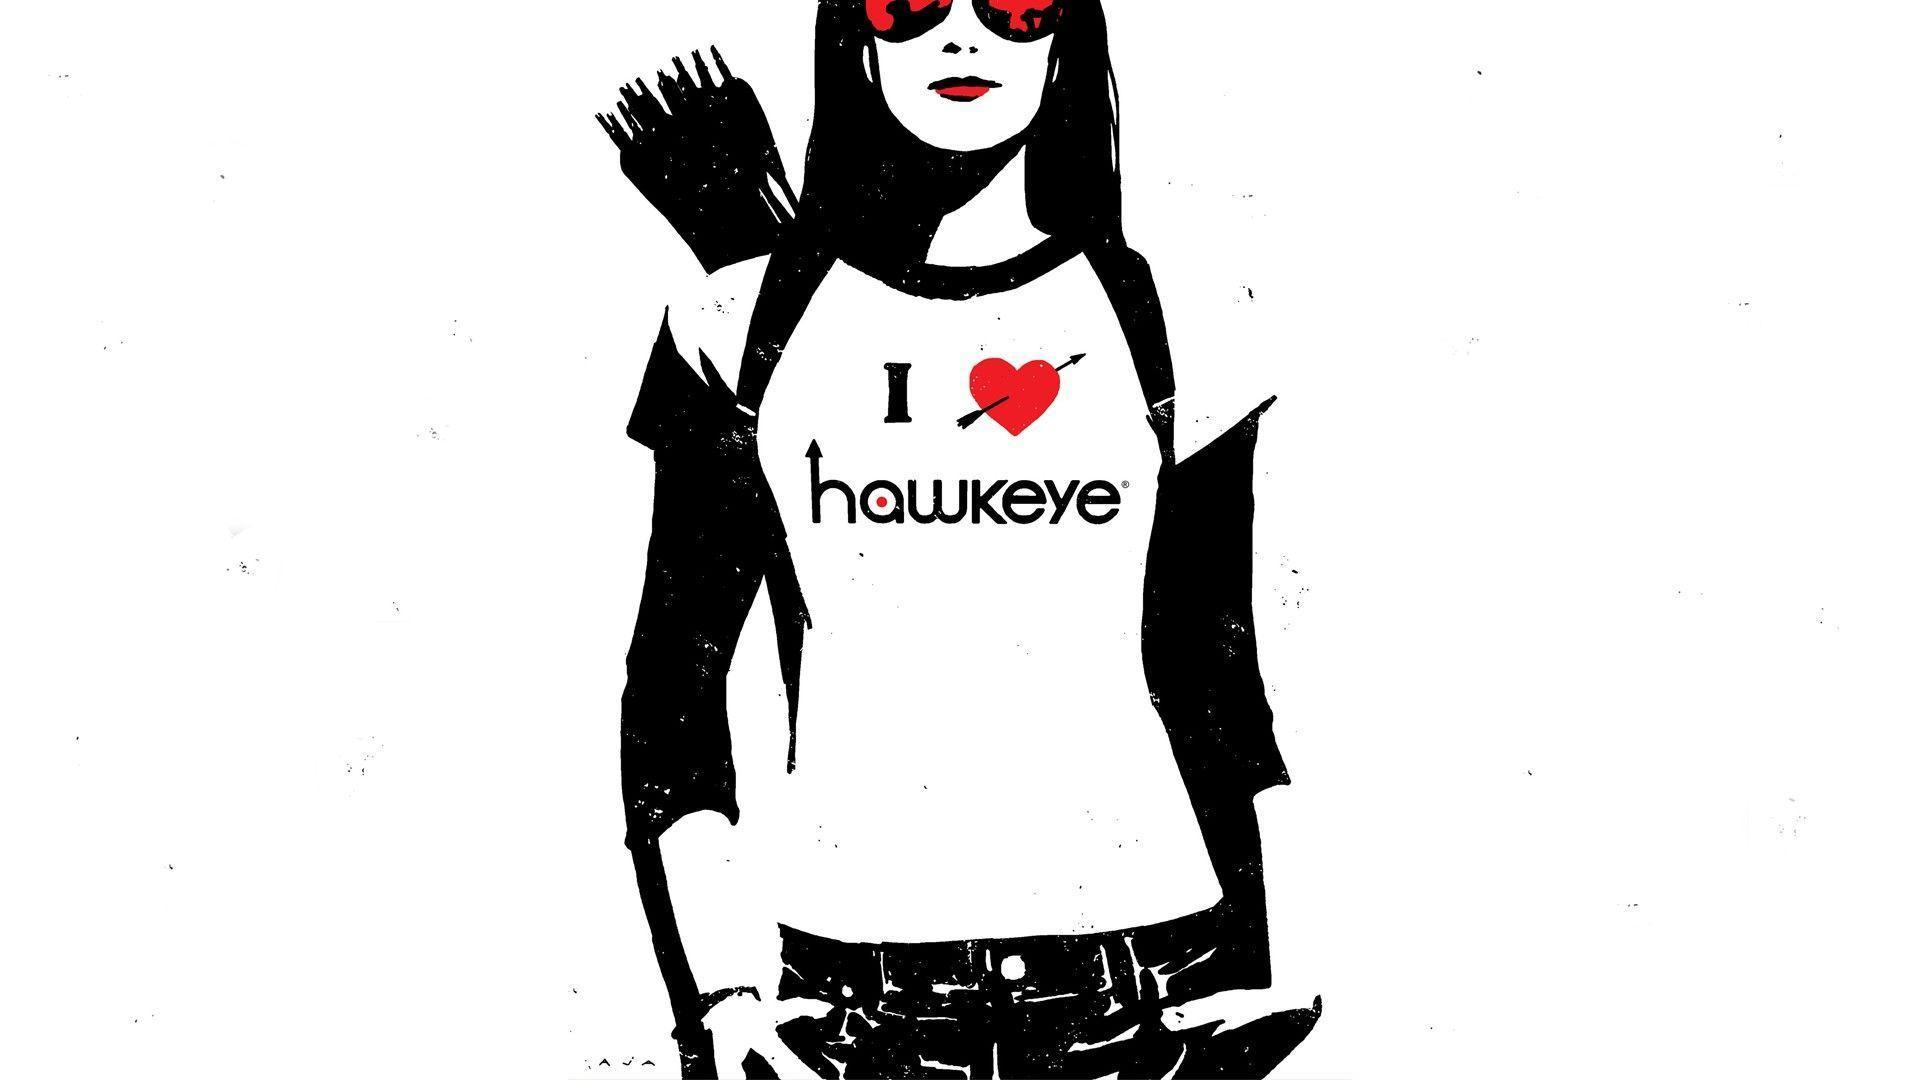 Hawkeye Computer Wallpapers, Desktop Backgrounds 1920x1080 Id: 408760